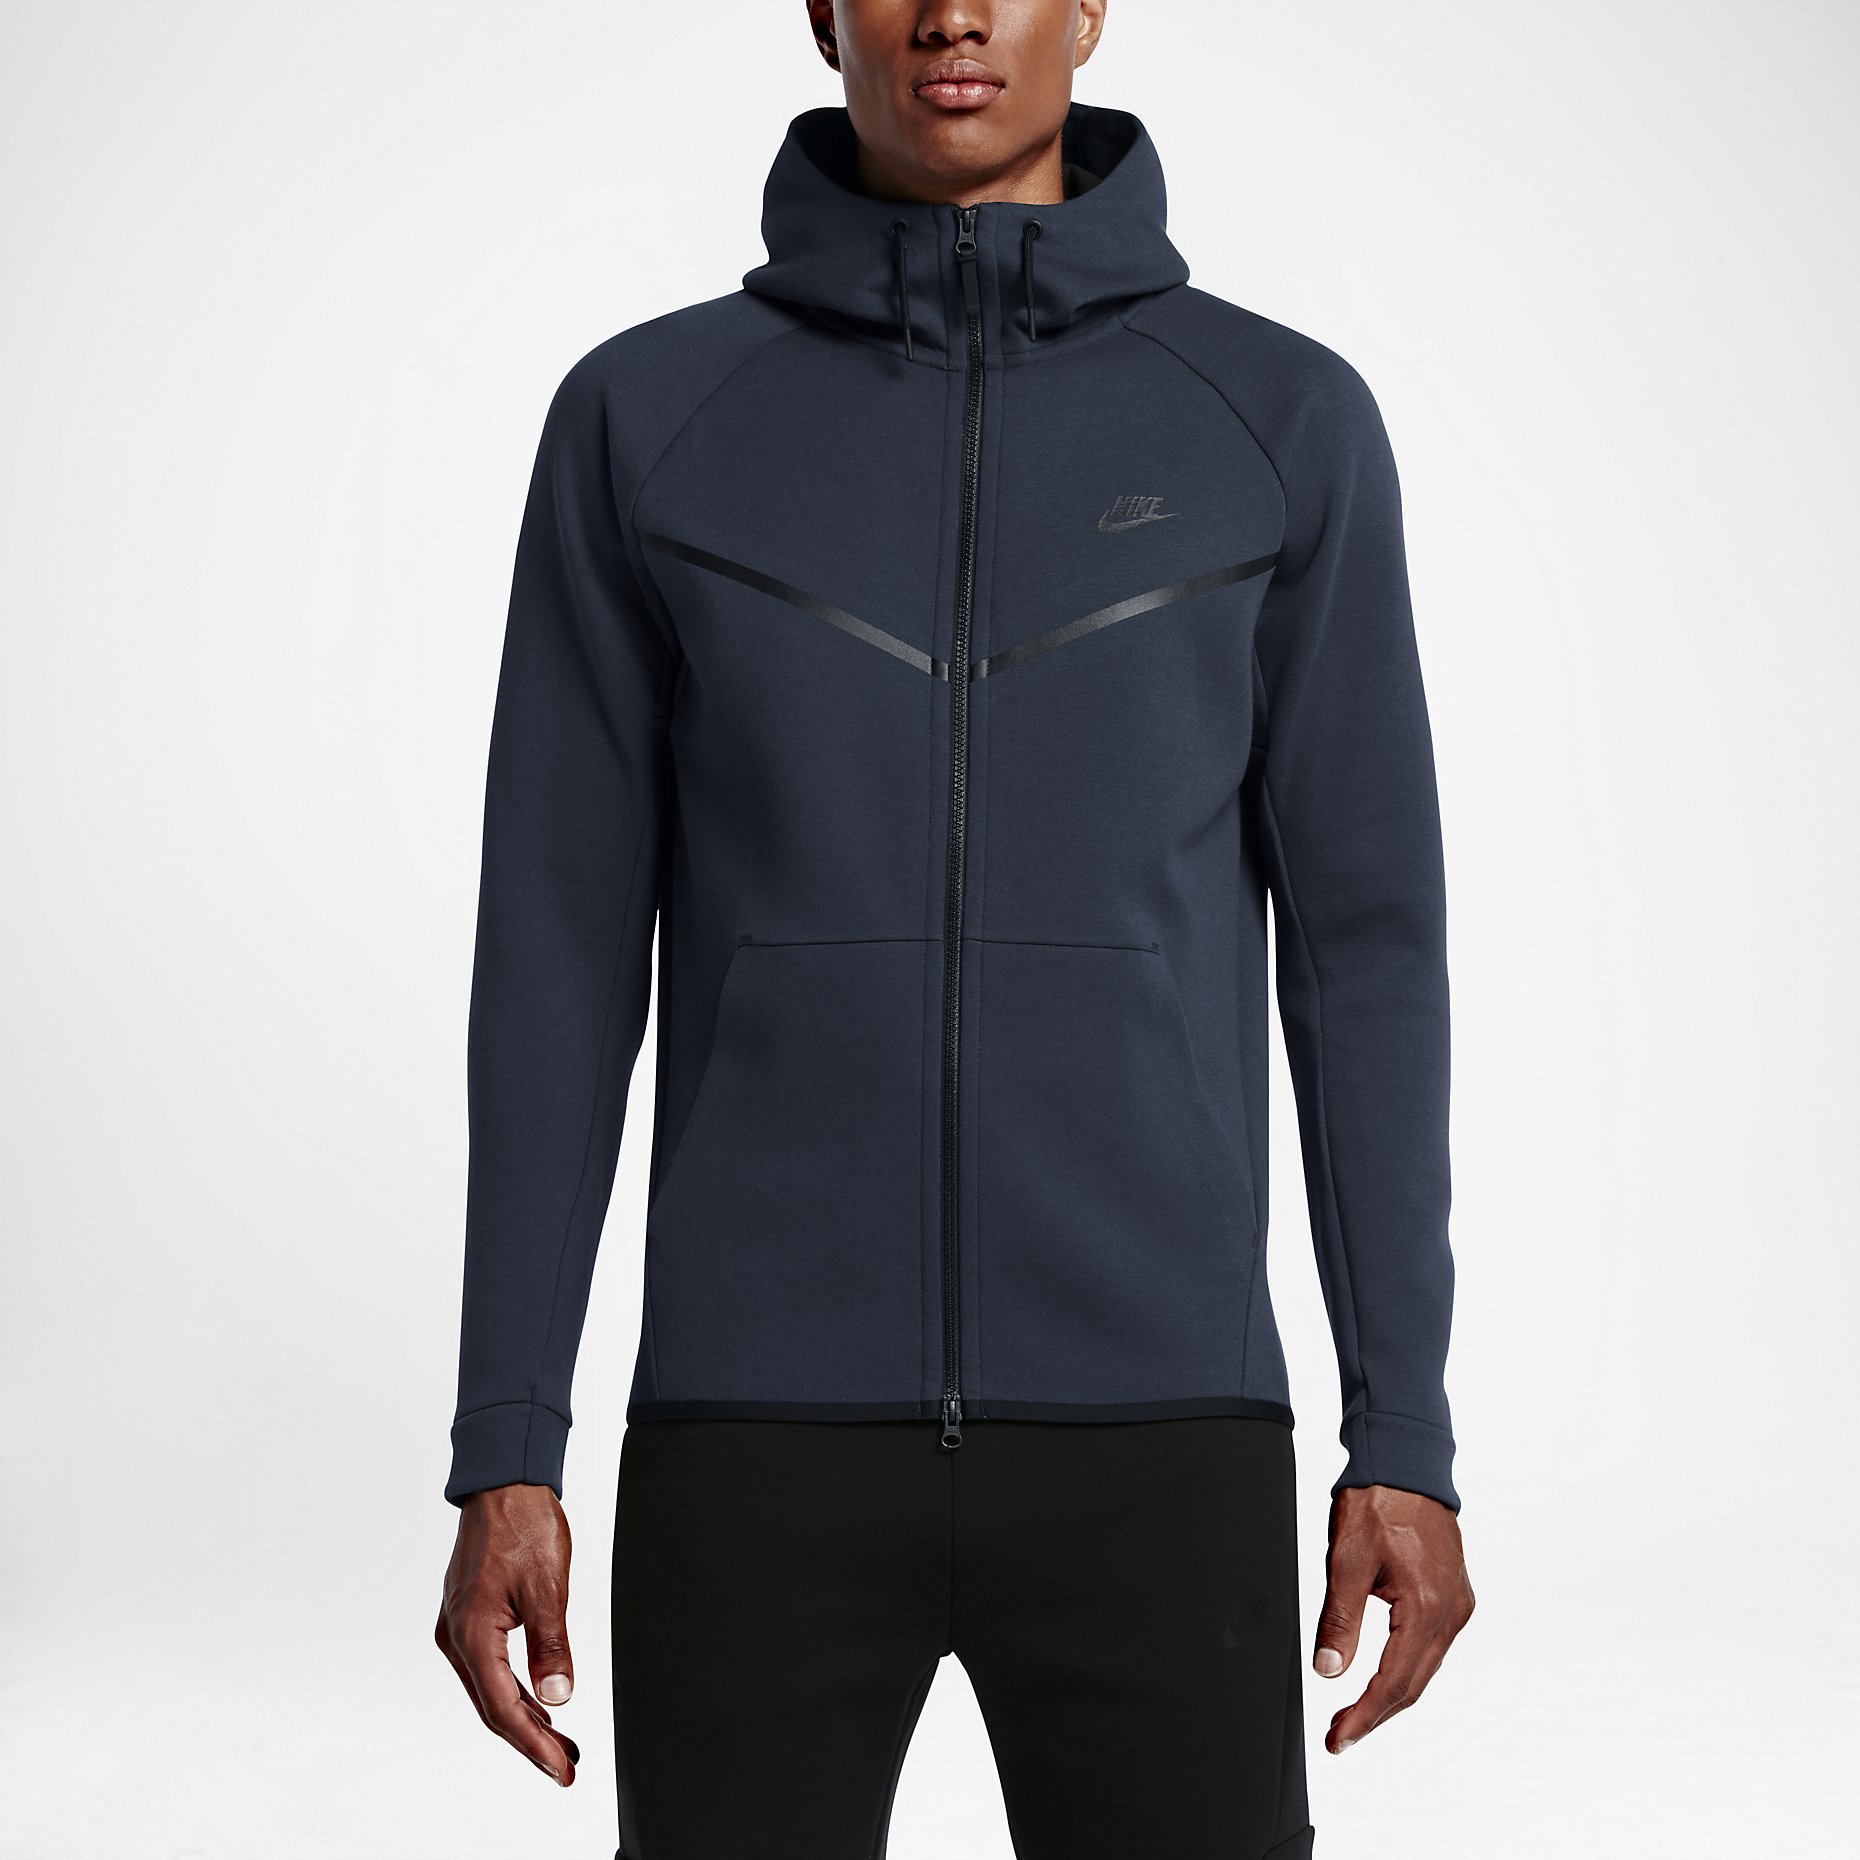 finest selection de3ee 5817f nike fleece hoodie mens price